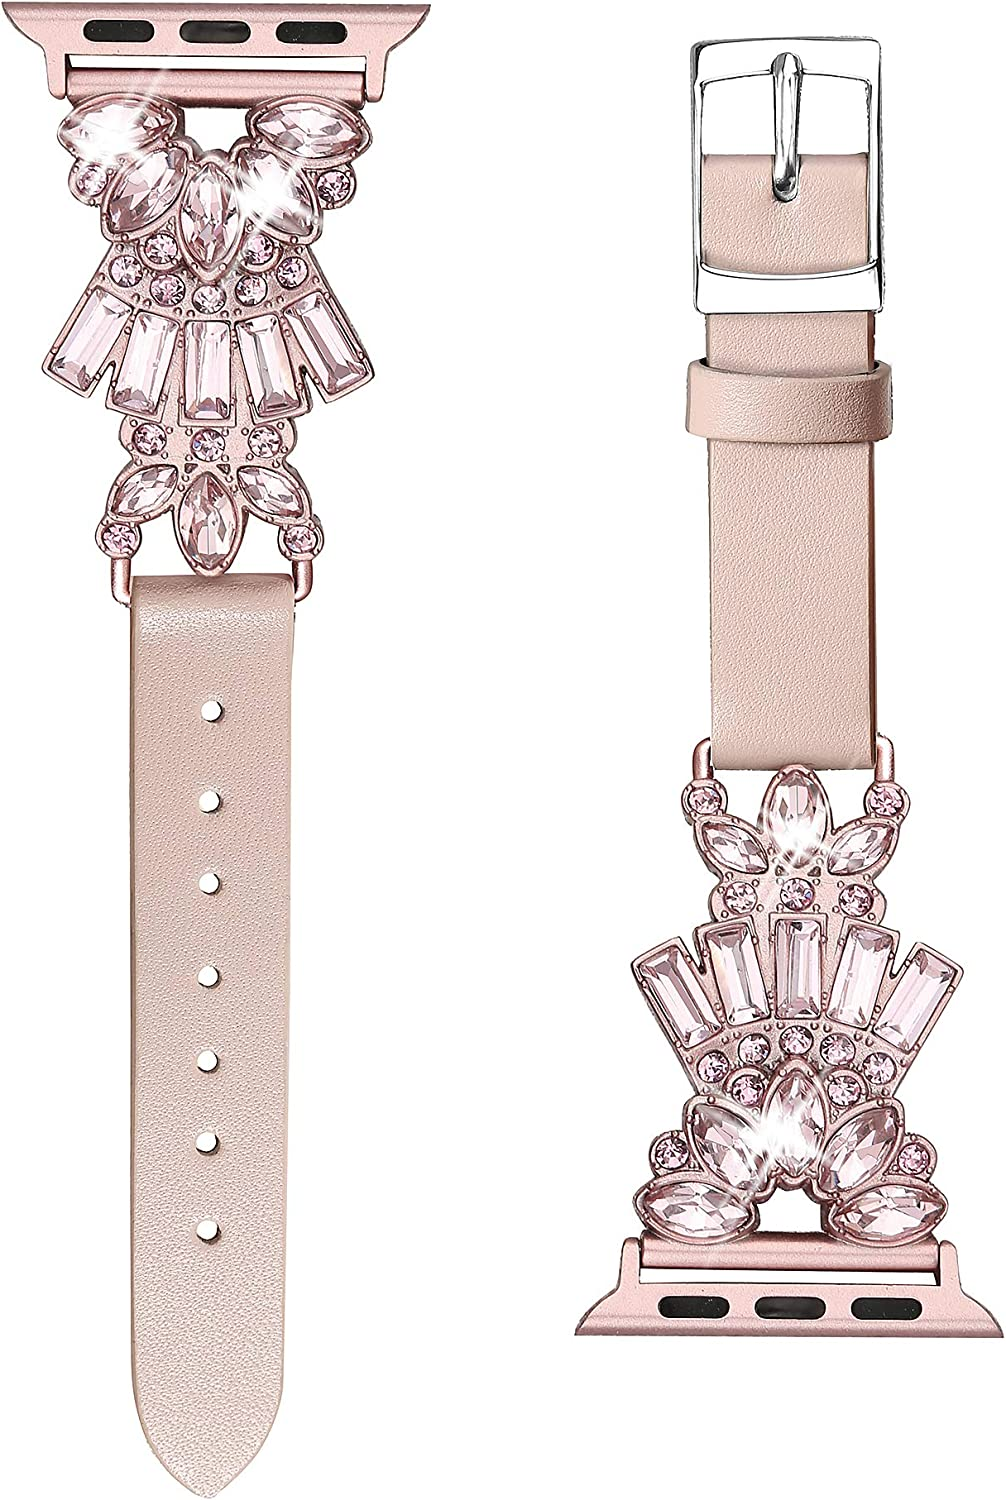 Secbolt Band Compatible with Apple Watch Band 38mm 40mm iWatch Series 6/5/4/3/2/1 SE, Top Grain Leather with Bling Crystal Diamonds Wristband Strap Accessories Women, Pink Small